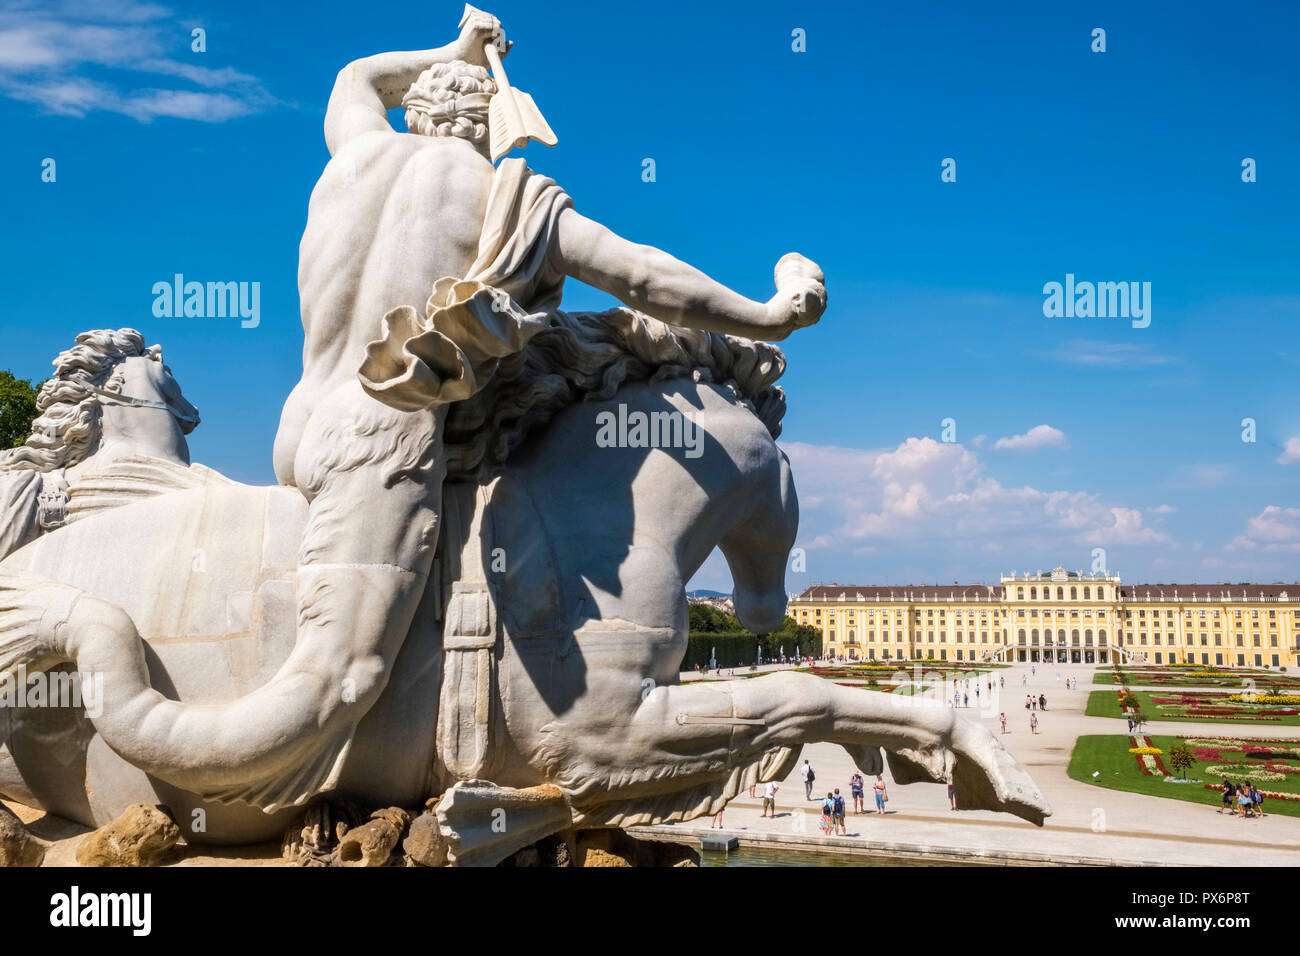 Schonbrunn Palace and landscaped Gardens, Vienna, Austria, Europe - Stock Image